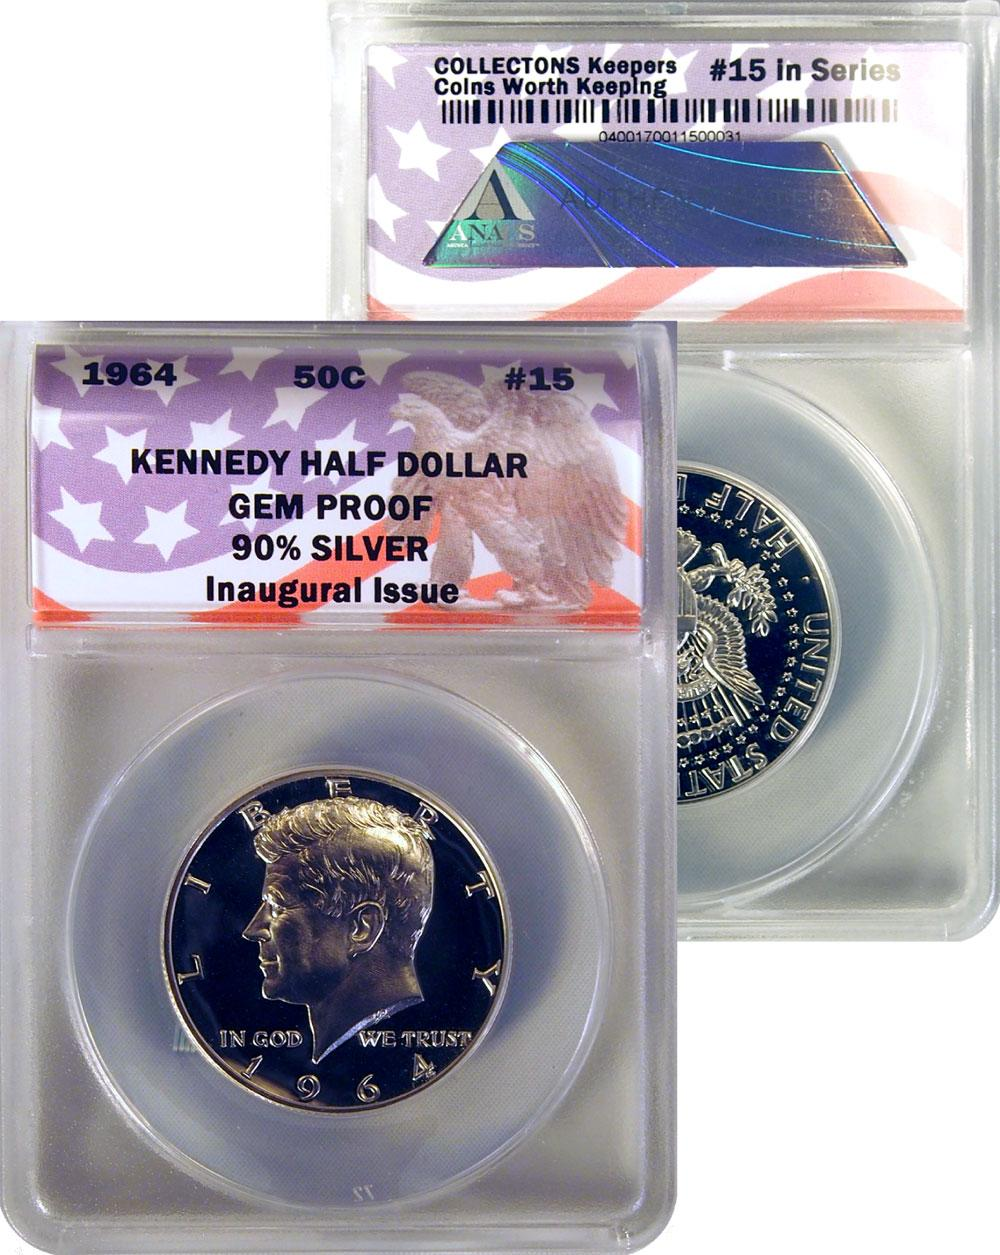 CollecTons Keepers #15: 1964 Kennedy Half Dollar 90% Silver Inaugural Issue Certified in Exclusive ANACS Gem Proof Holder